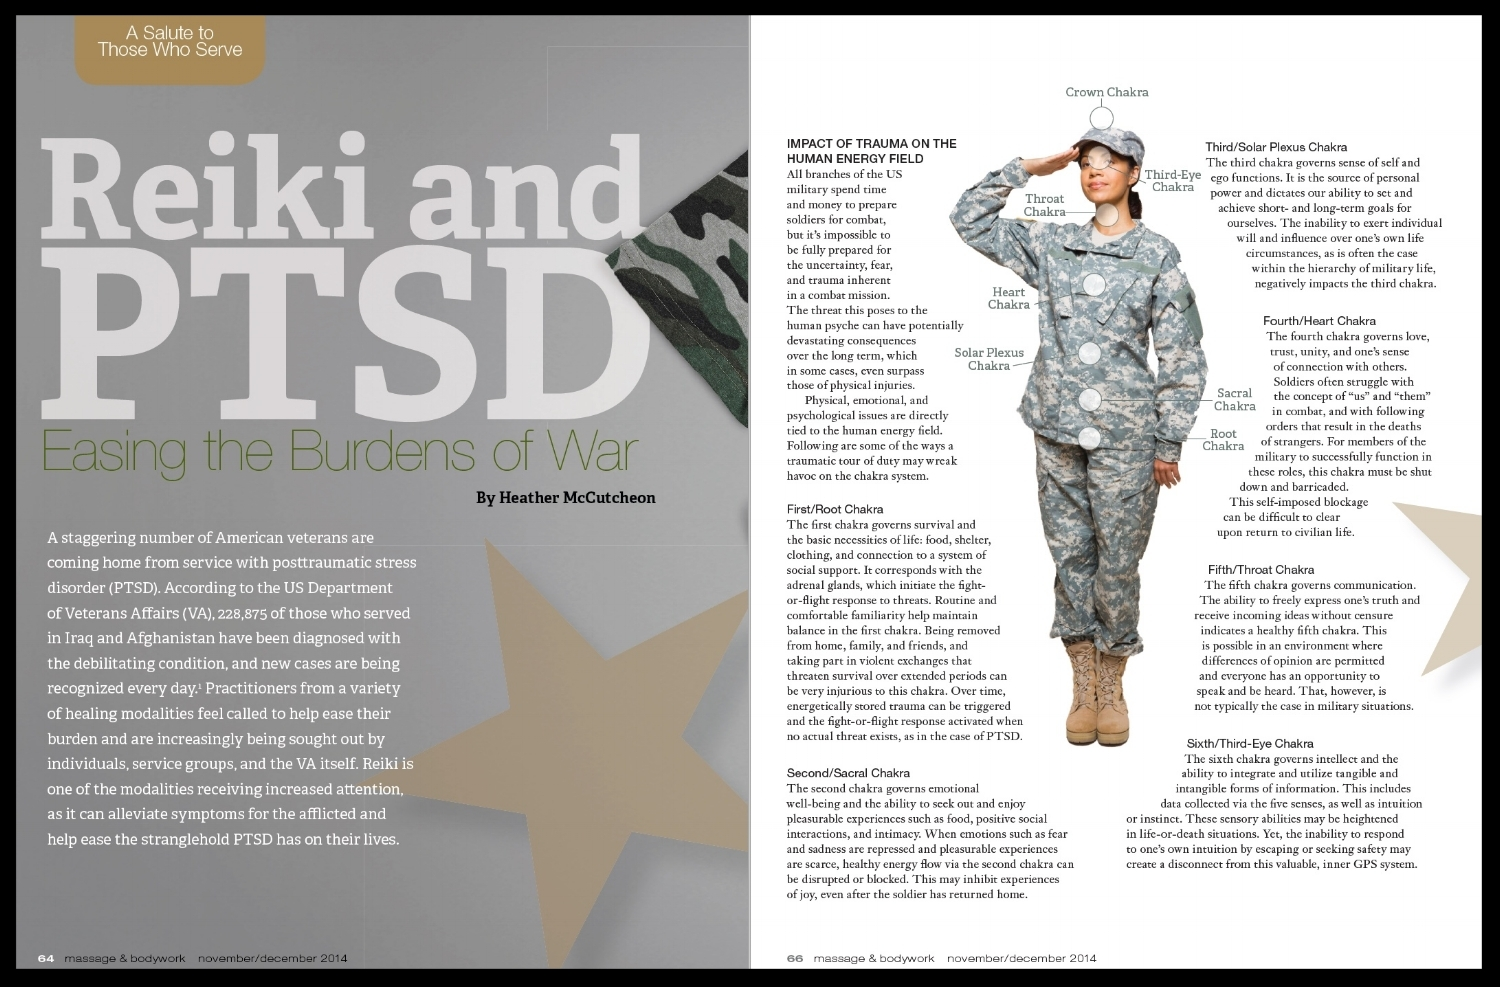 REiki and PTSD: easing the burdens of war